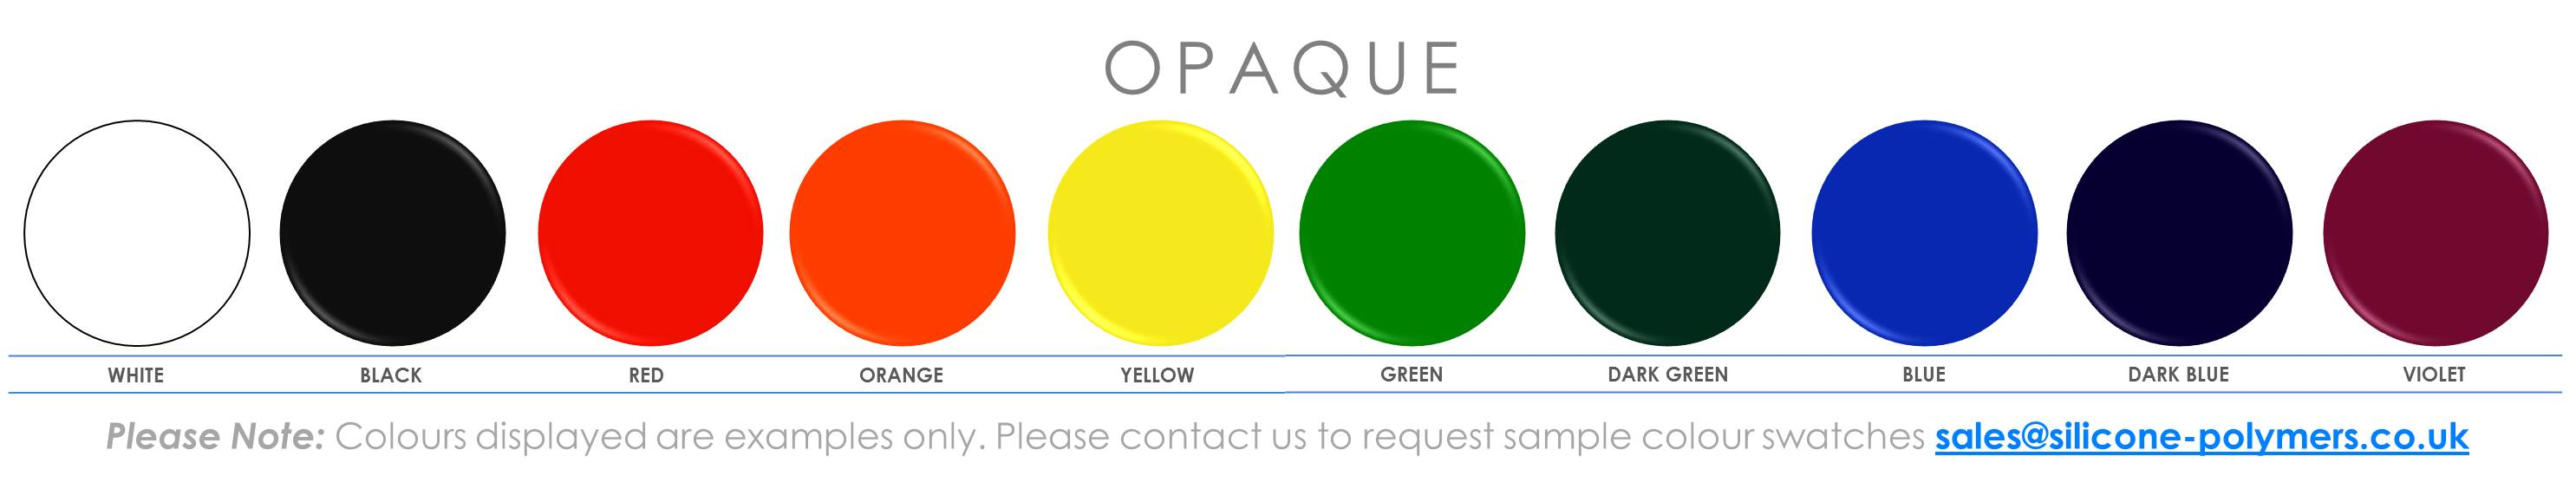 Opaque Colour Swatches